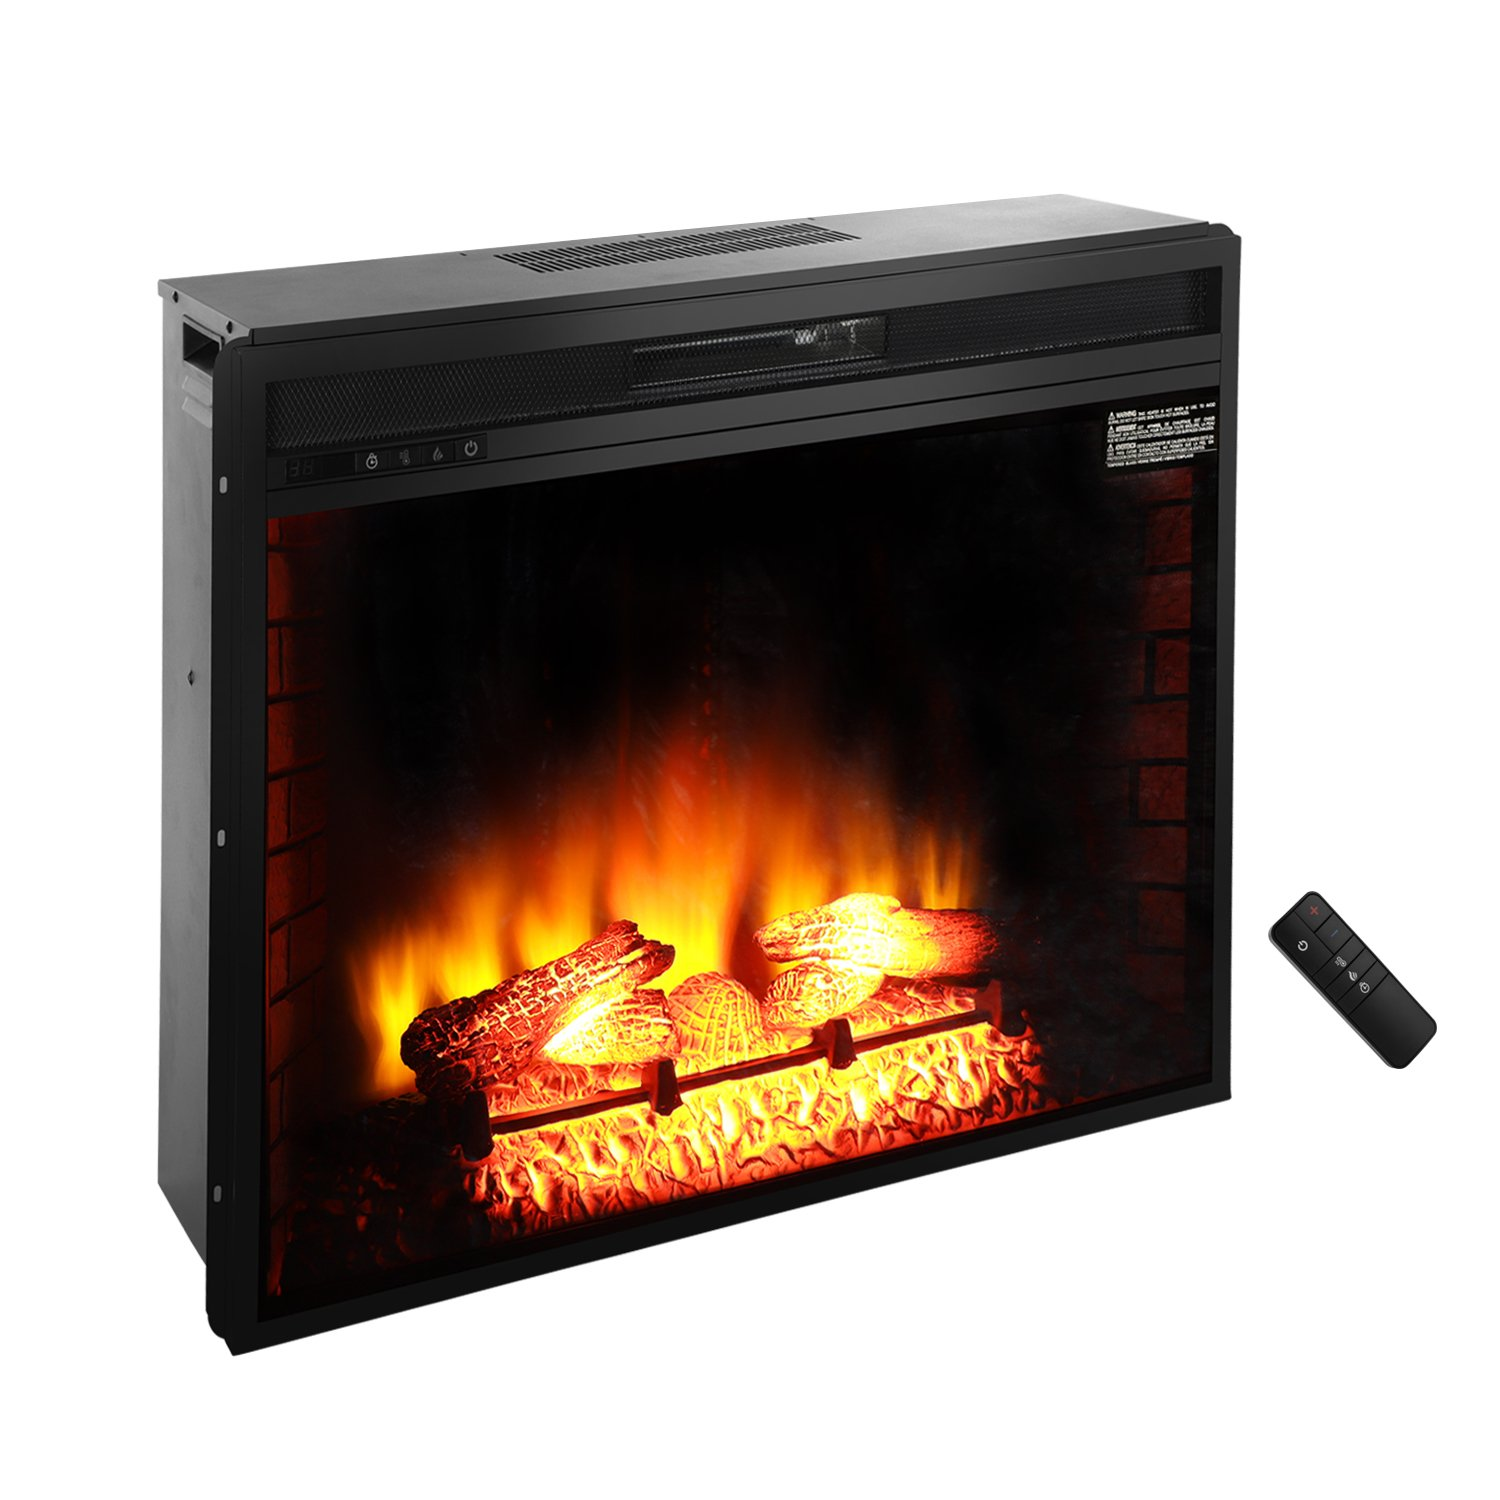 ROVSUN 33'' Recessed Electric Fireplace Insert W/Remote Control Timer Adjustable 5200BTU Quartz Space Heater FireBox,3 Realistic Flame Effect,Two Side Built-In Wall Tiles Logs,CSA Listed(Black)